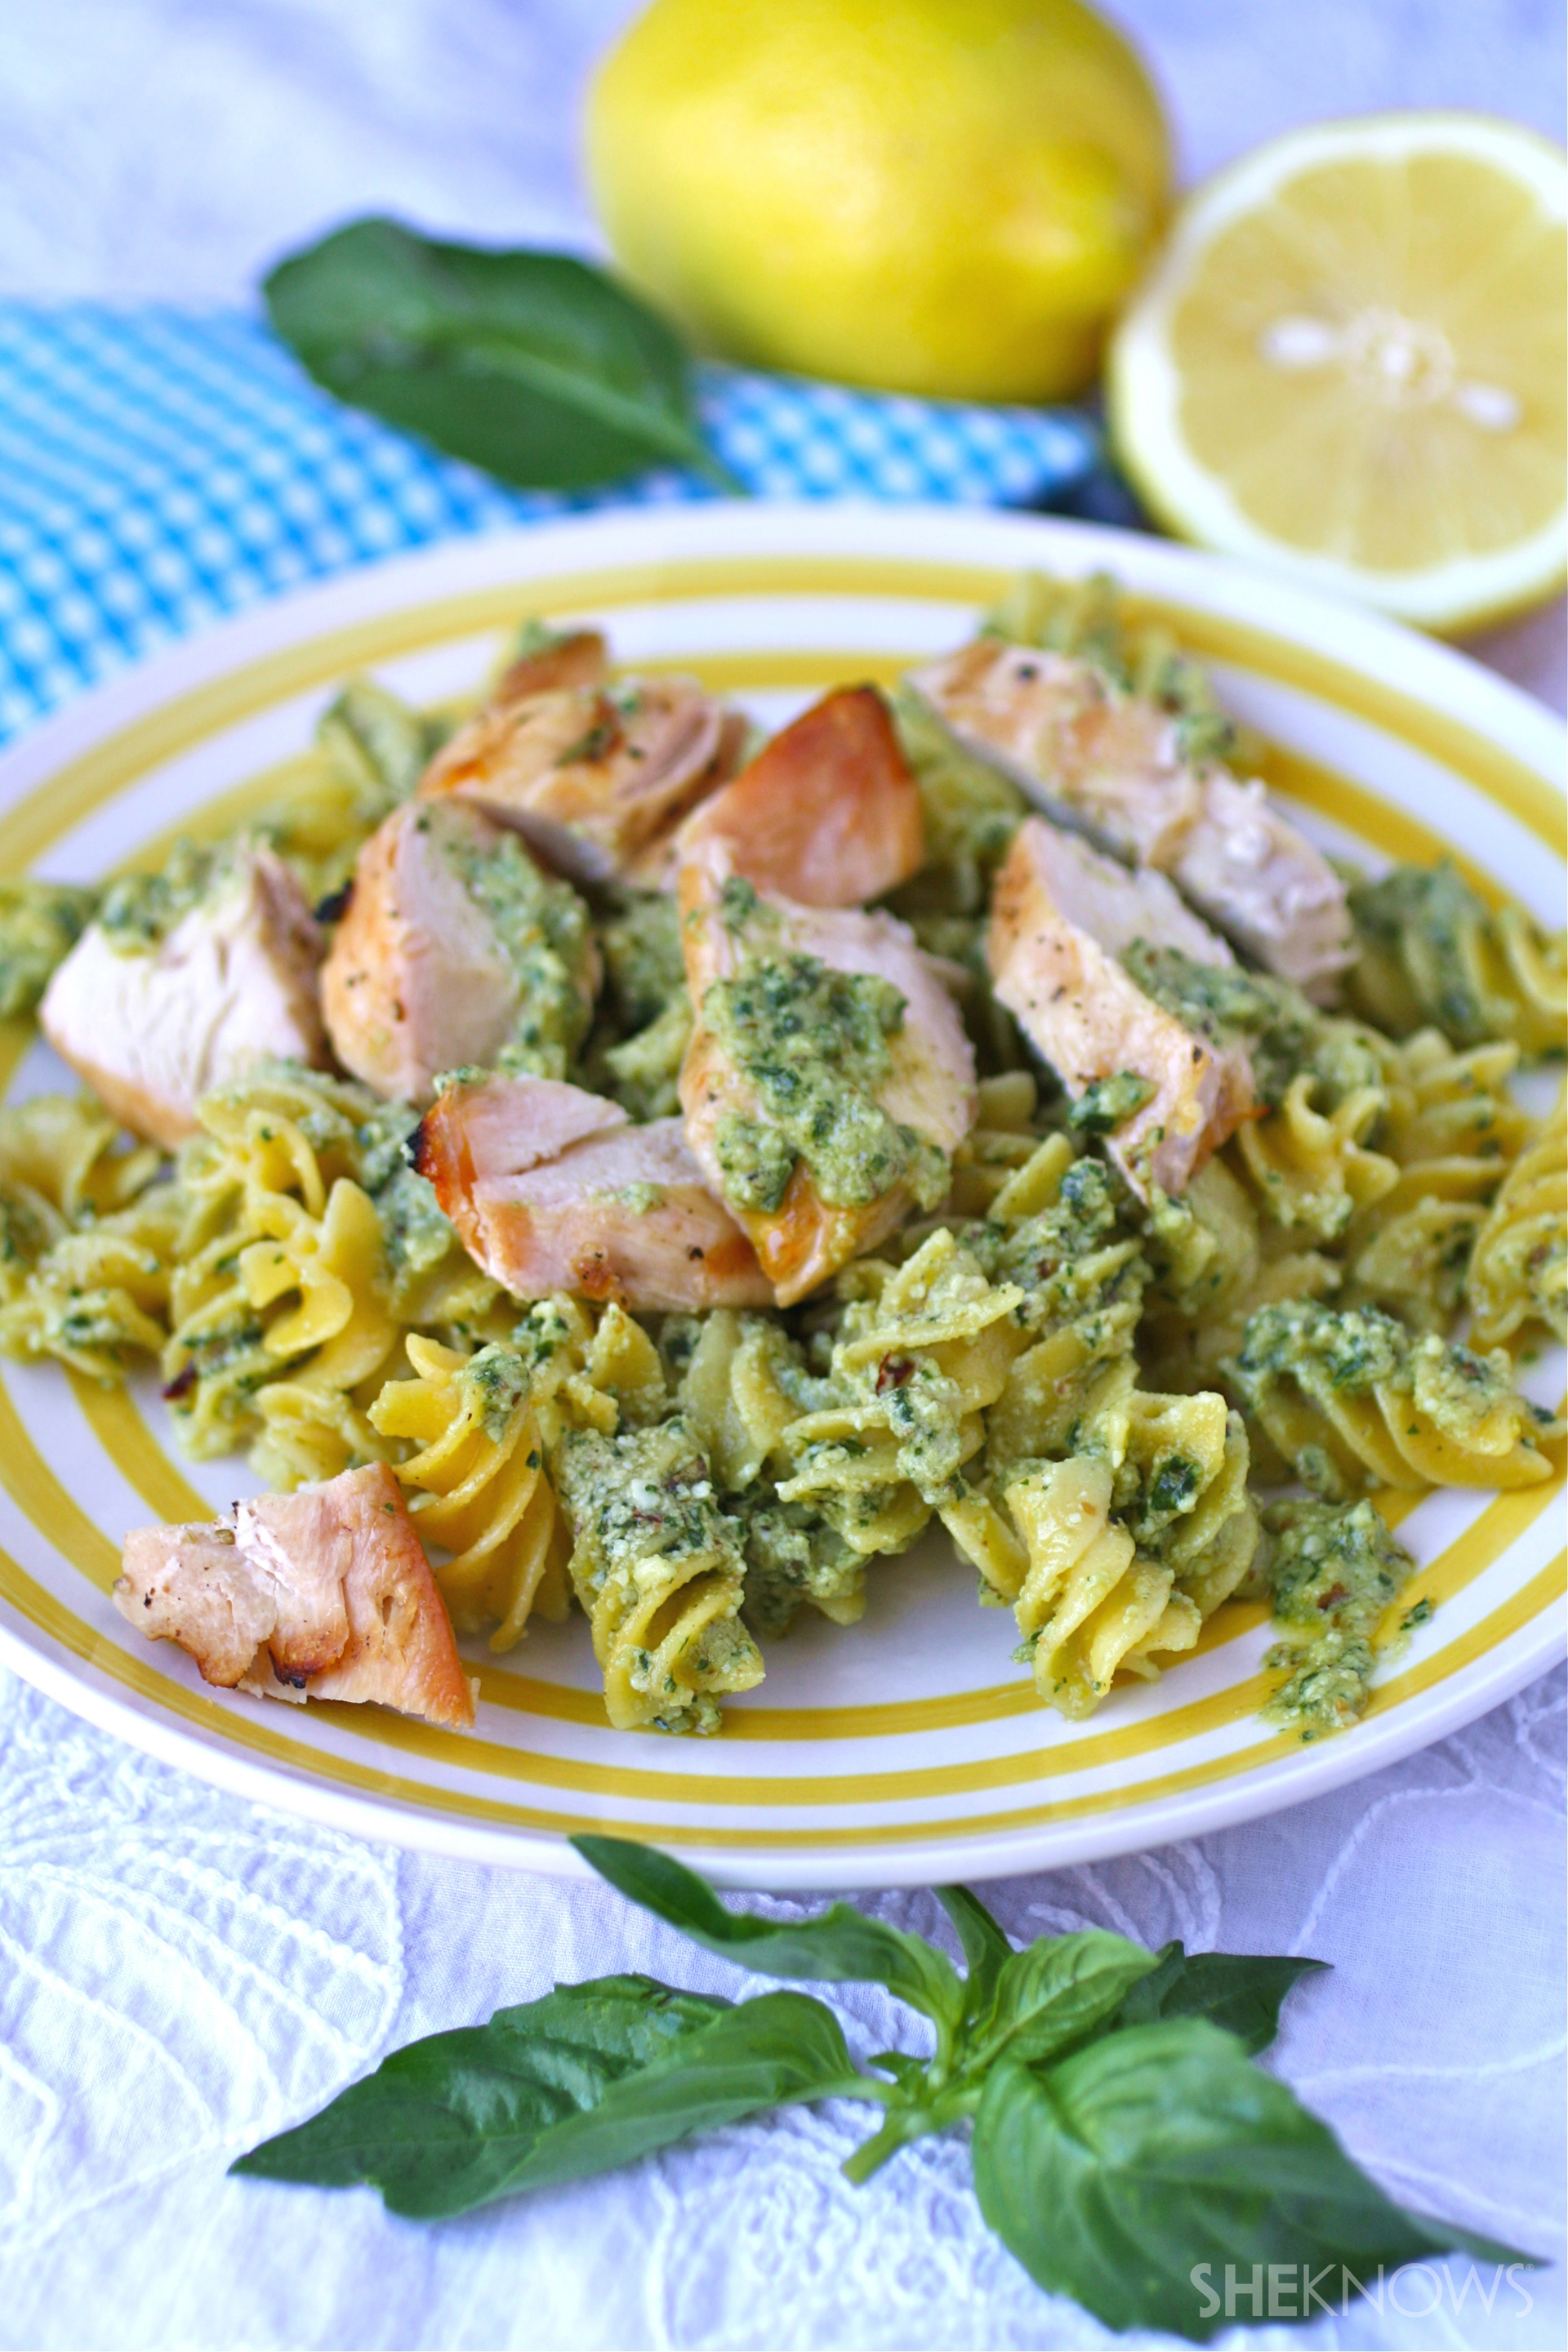 Gluten-free spicy lemon-pesto pasta with chicken